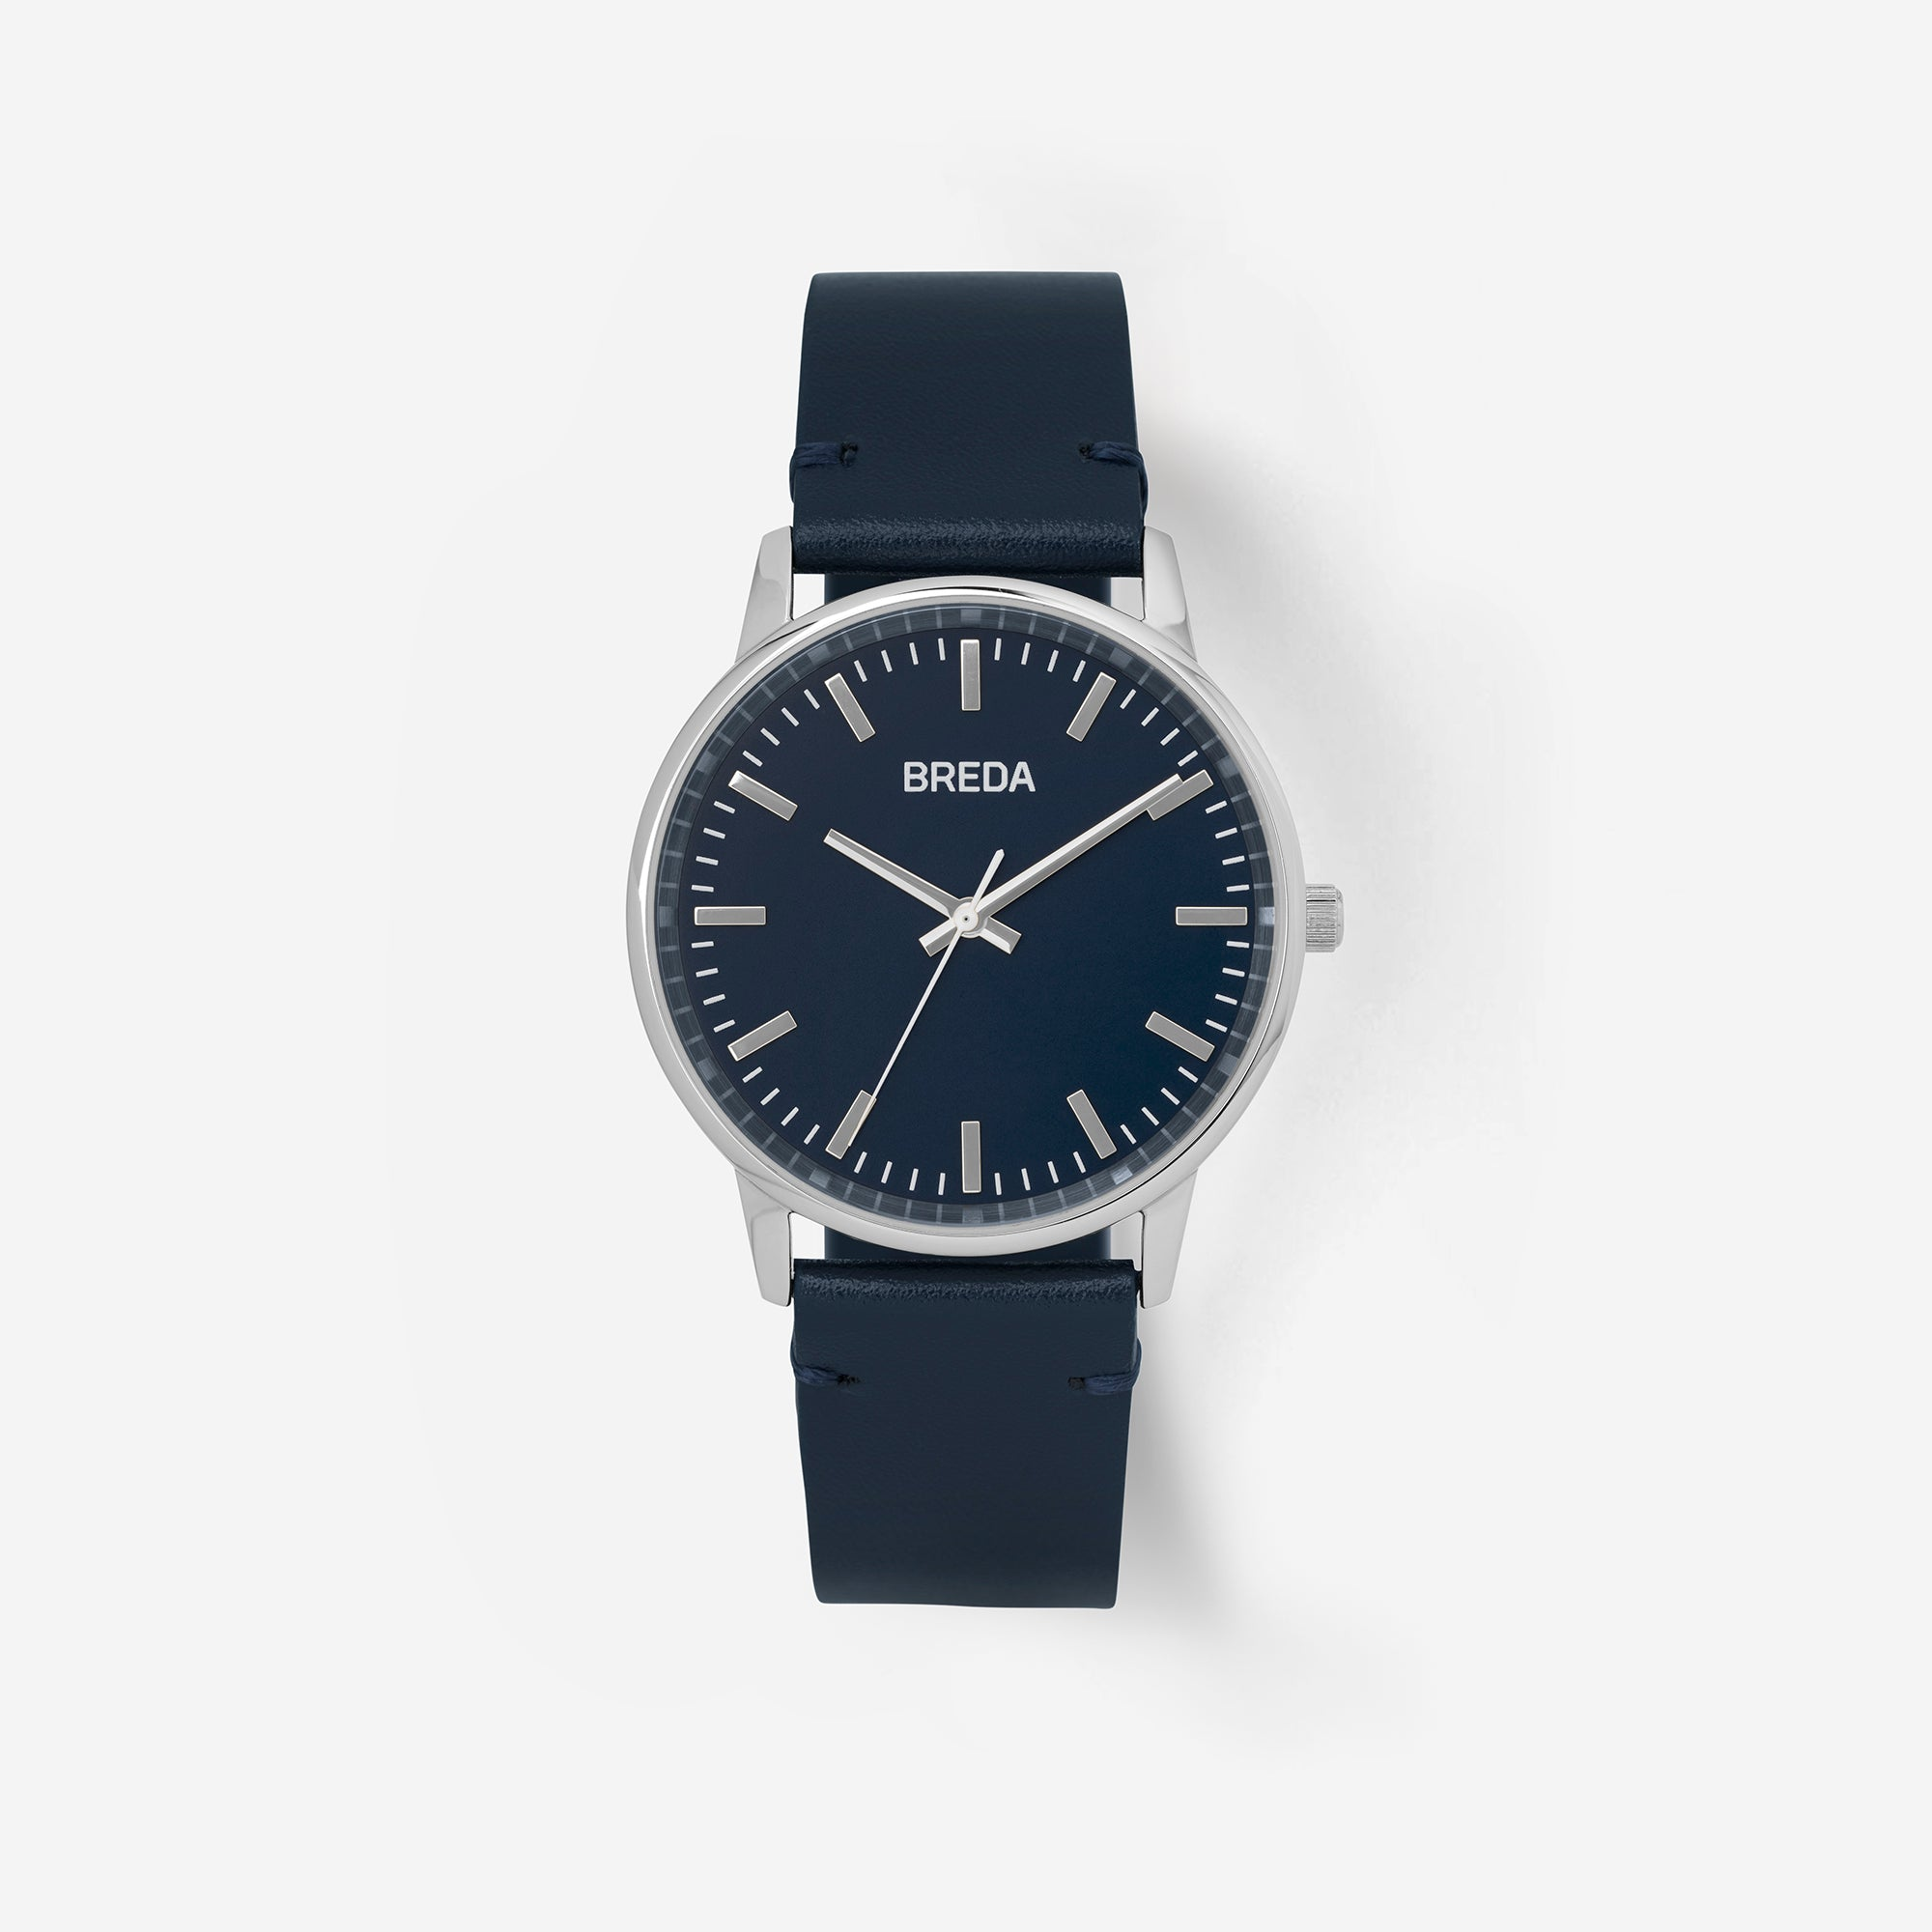 //cdn.shopify.com/s/files/1/0879/6650/products/breda-zapf-1697m-silver-navy-leather-watch-front_bdbaef38-0968-4cf0-bf7f-75f24fc93eca_1024x1024.jpg?v=1543248422